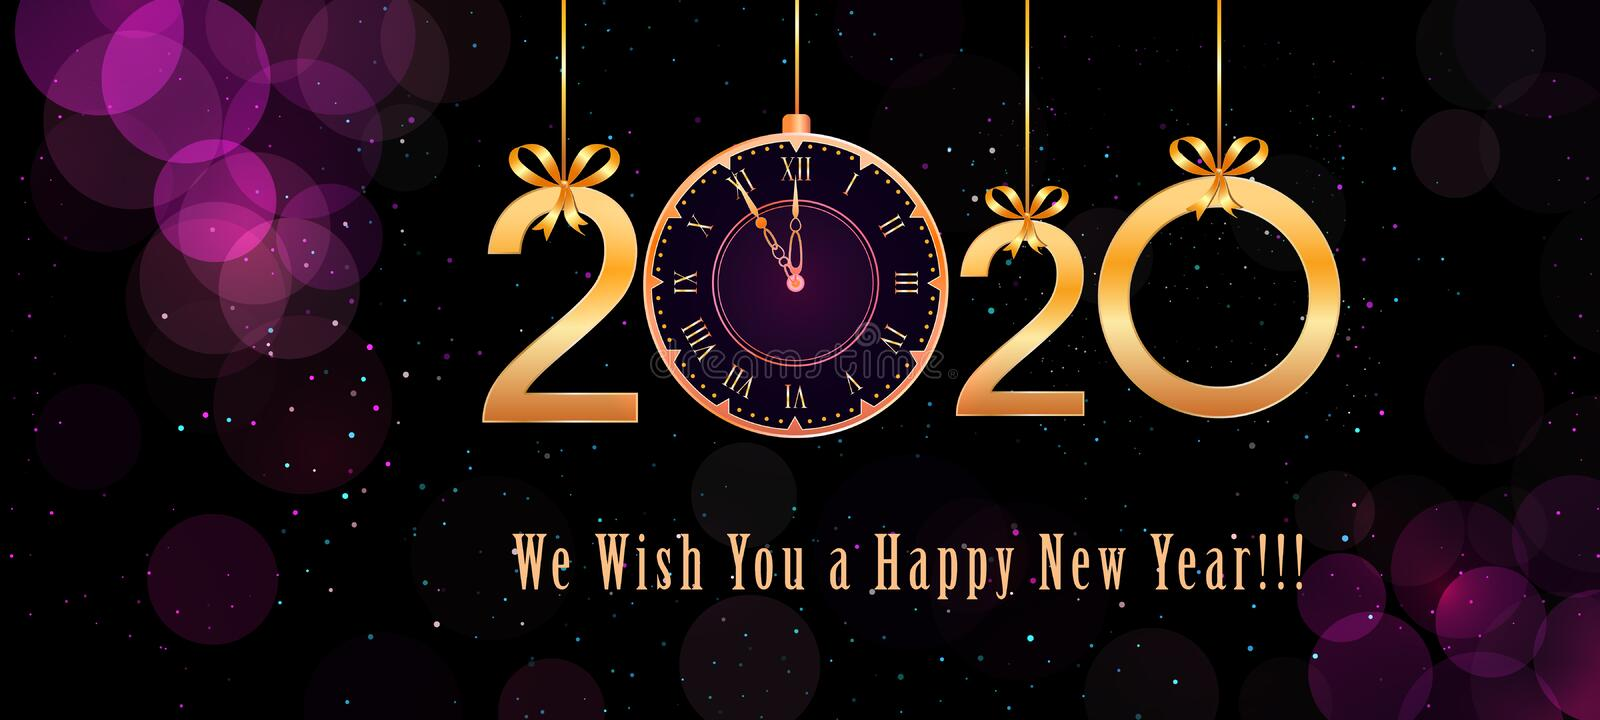 2020 Happy New Year text design with hanging golden numbers, ribbon bows and vintage clock on abstract purple background vector illustration